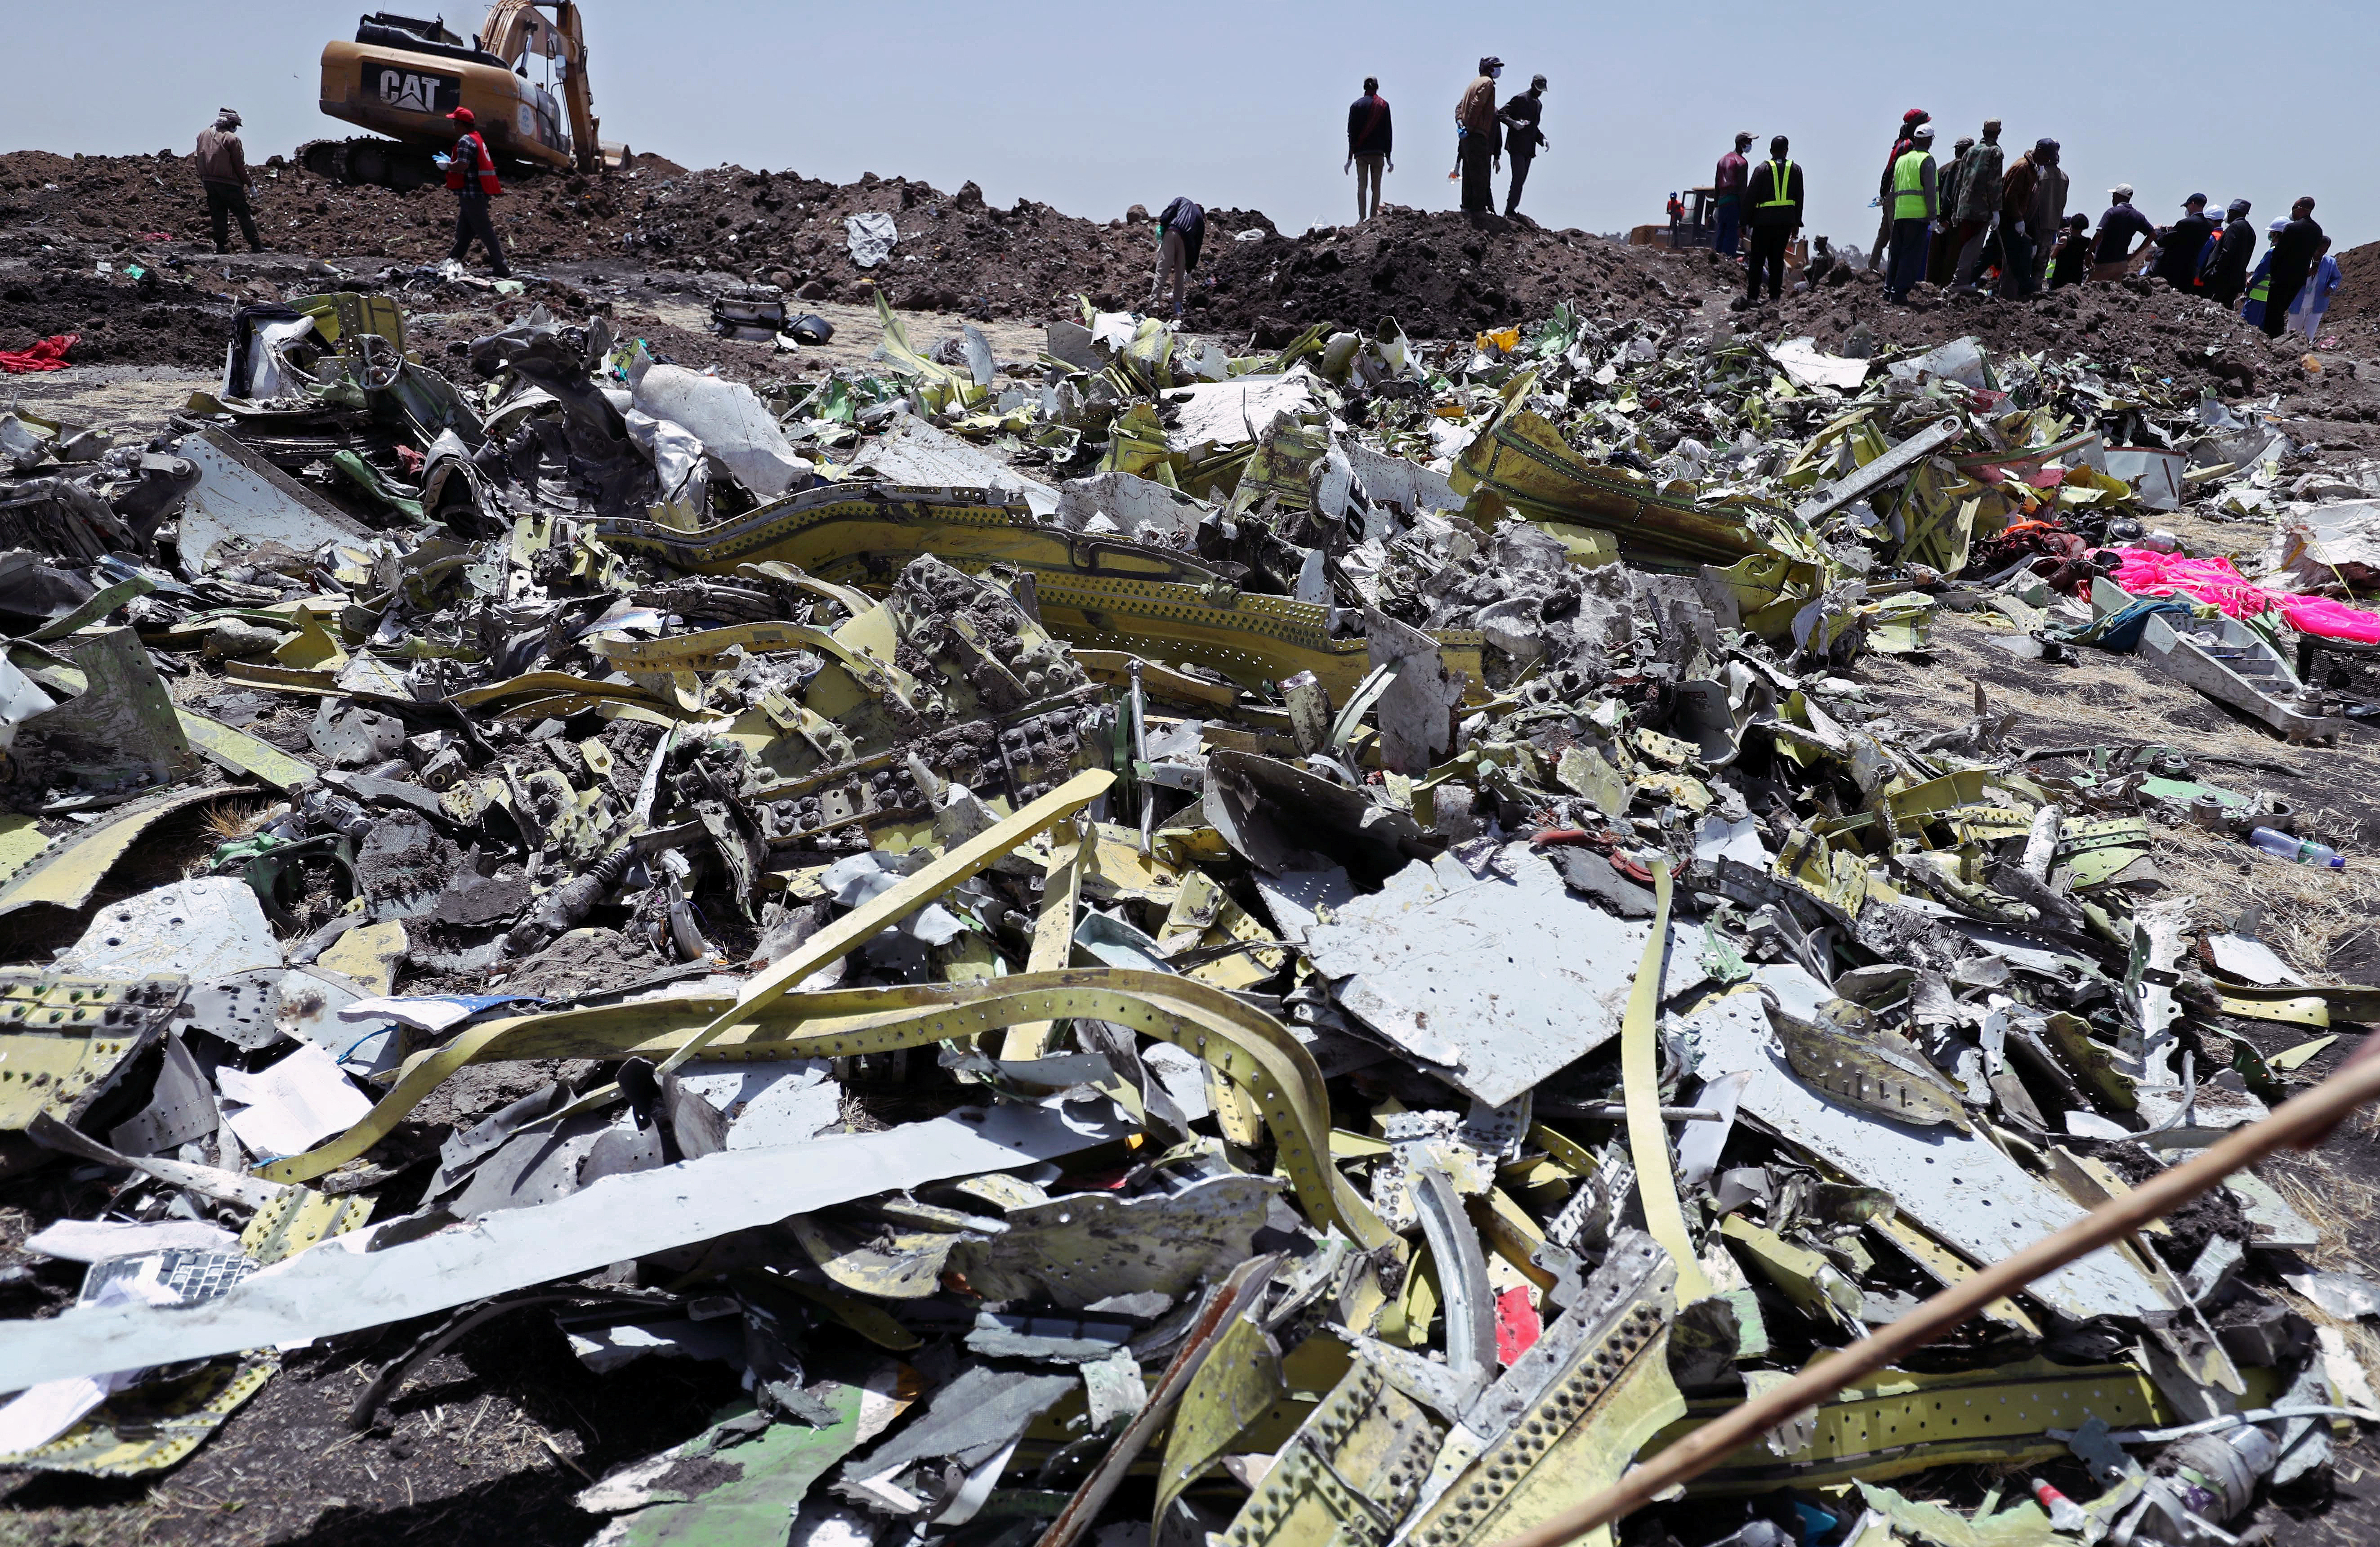 FILE - Wreckage is seen at the site of the Ethiopian Airlines plane crash, southeast of Addis Ababa, Ethiopia, March 11, 2019.